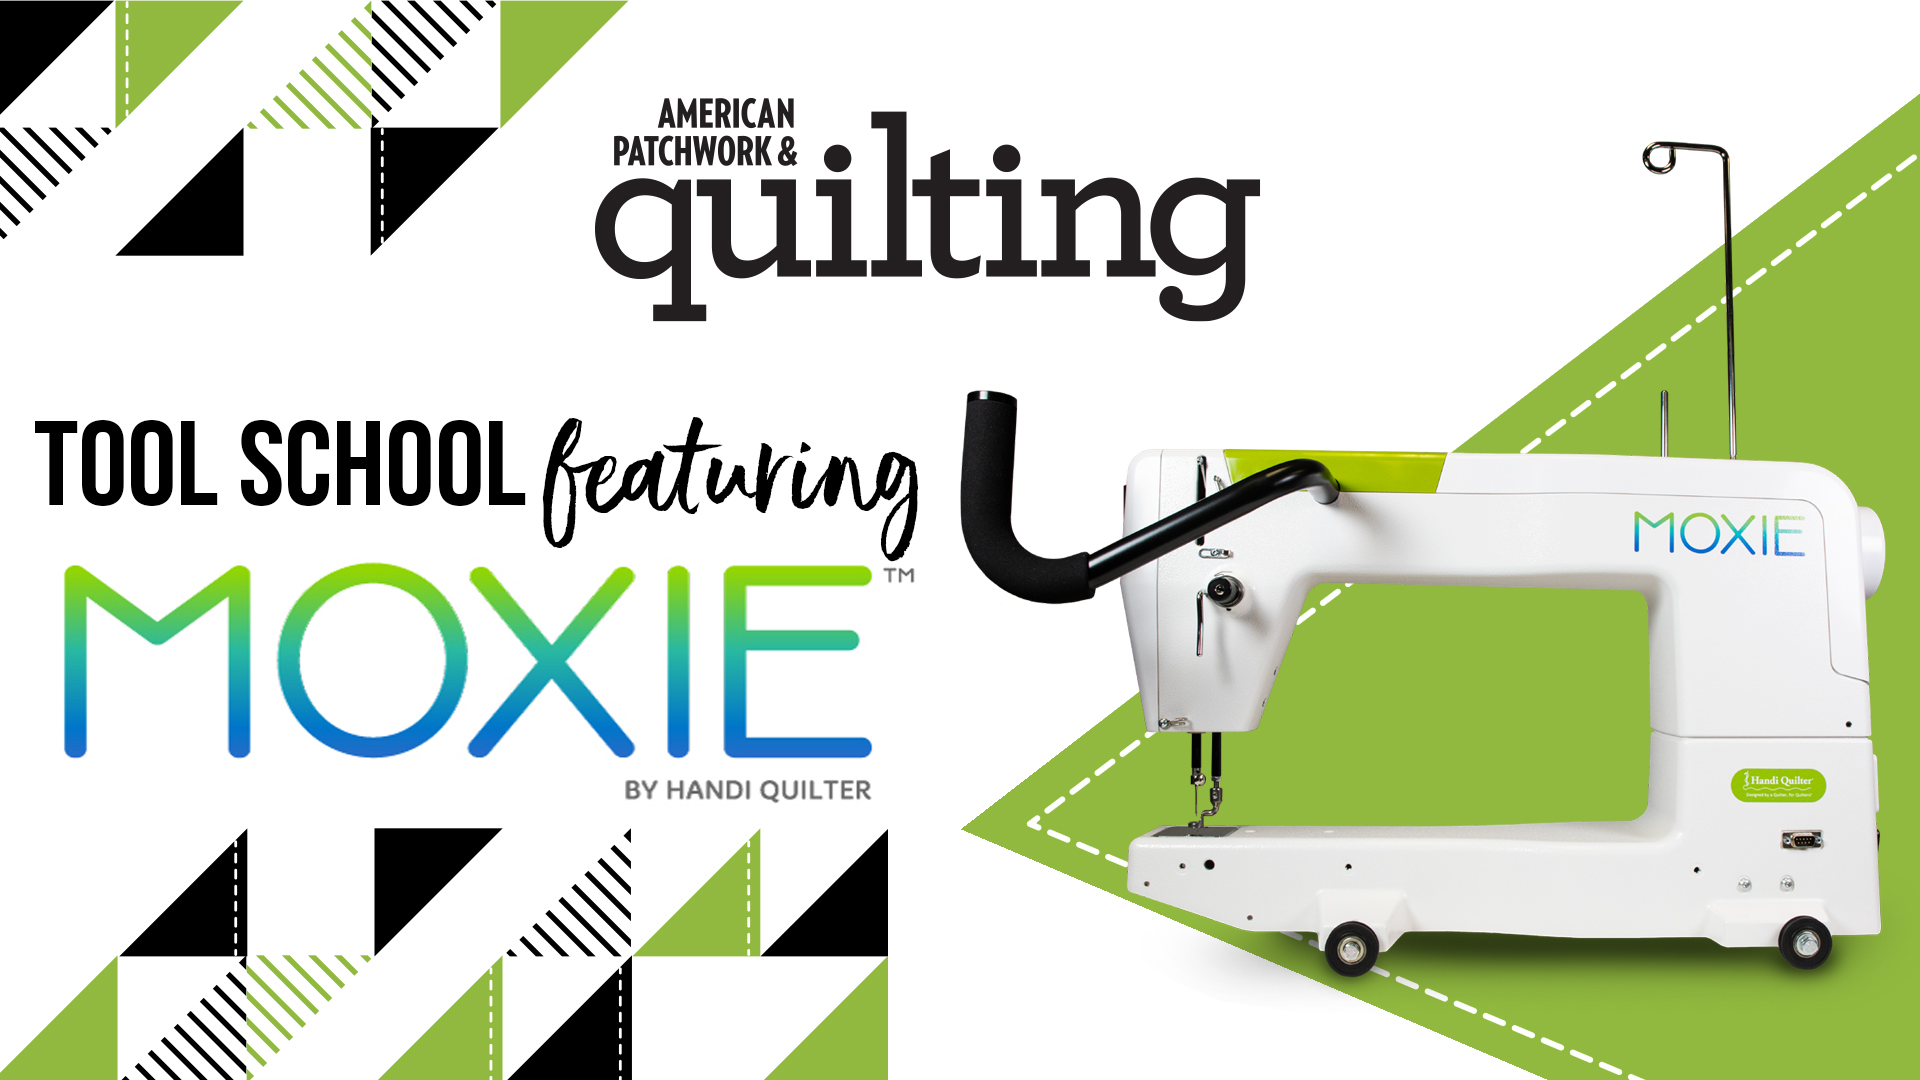 Tool School: NEW Handi Quilter Moxie Longarm Quilting Machine